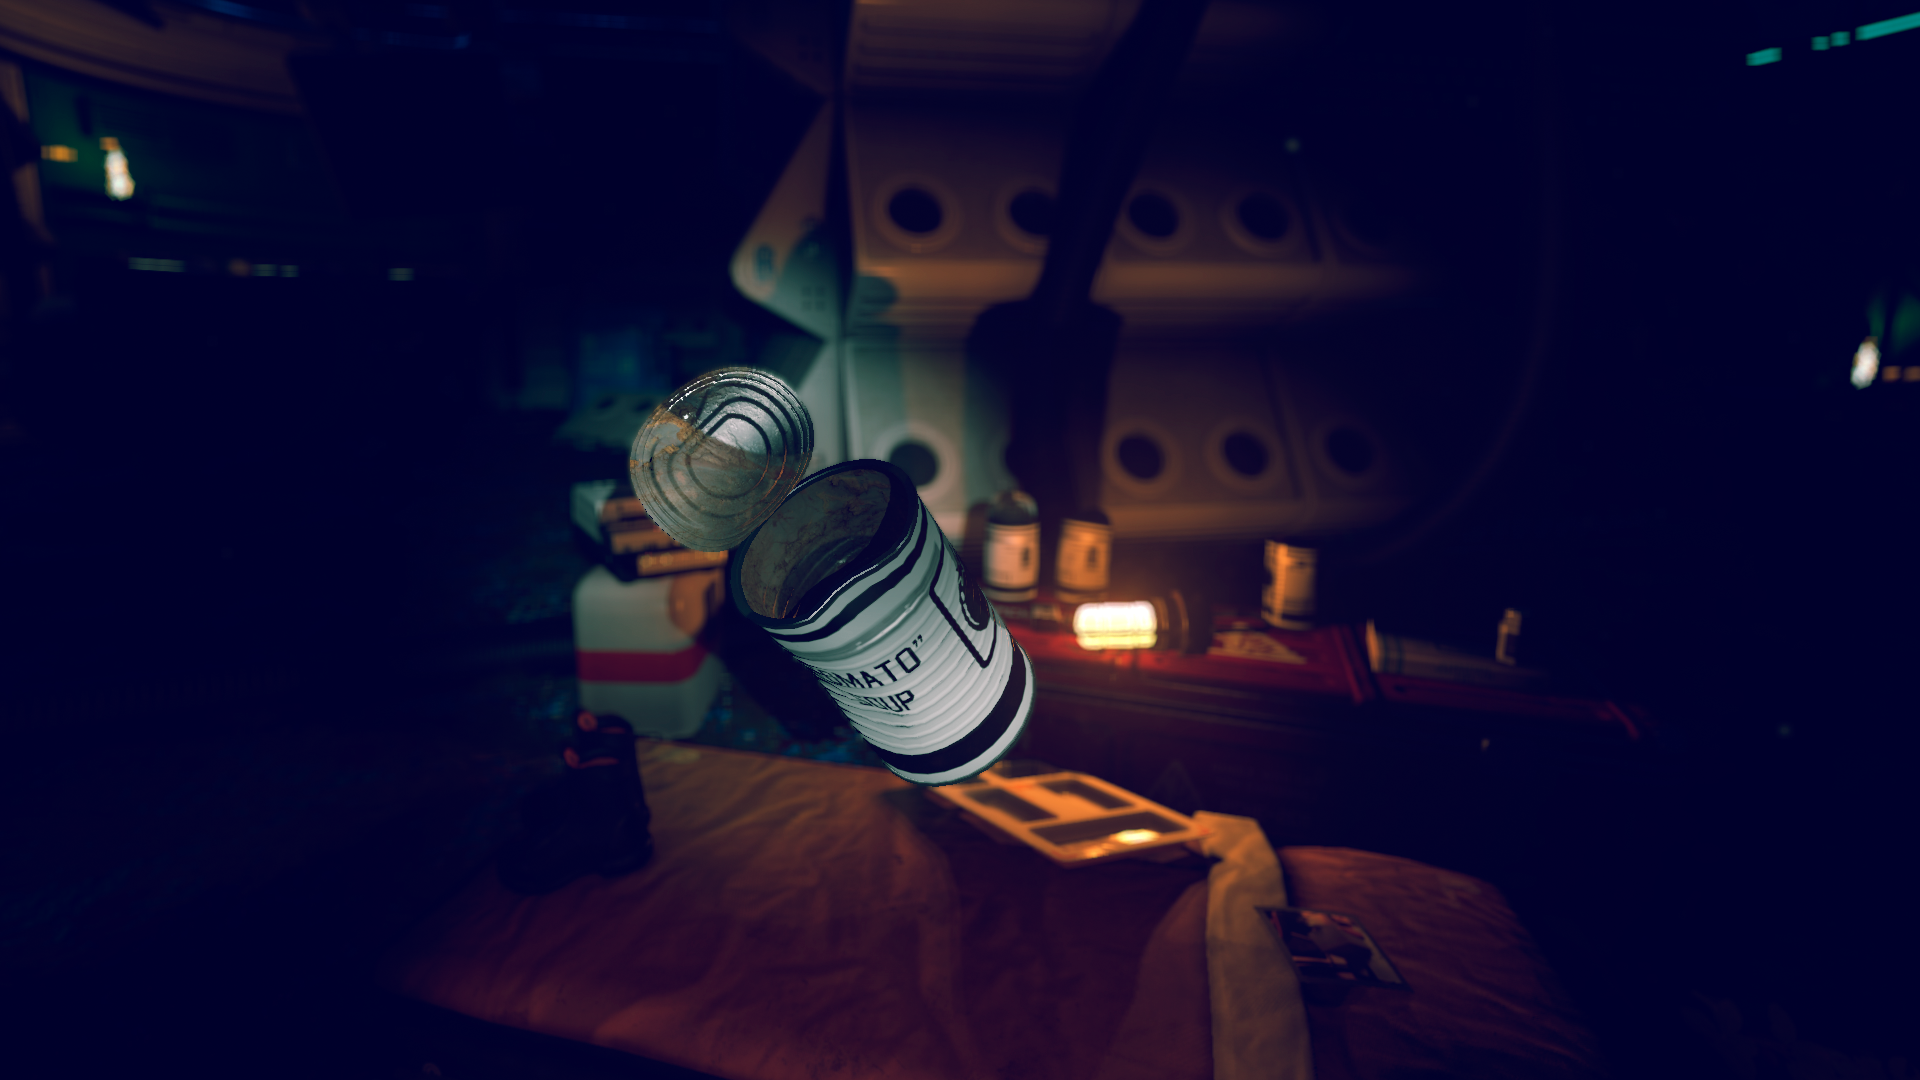 Gamescom2015: Sci-fi VR game Pollen is a breathtakingly ambitious Gone Home in space